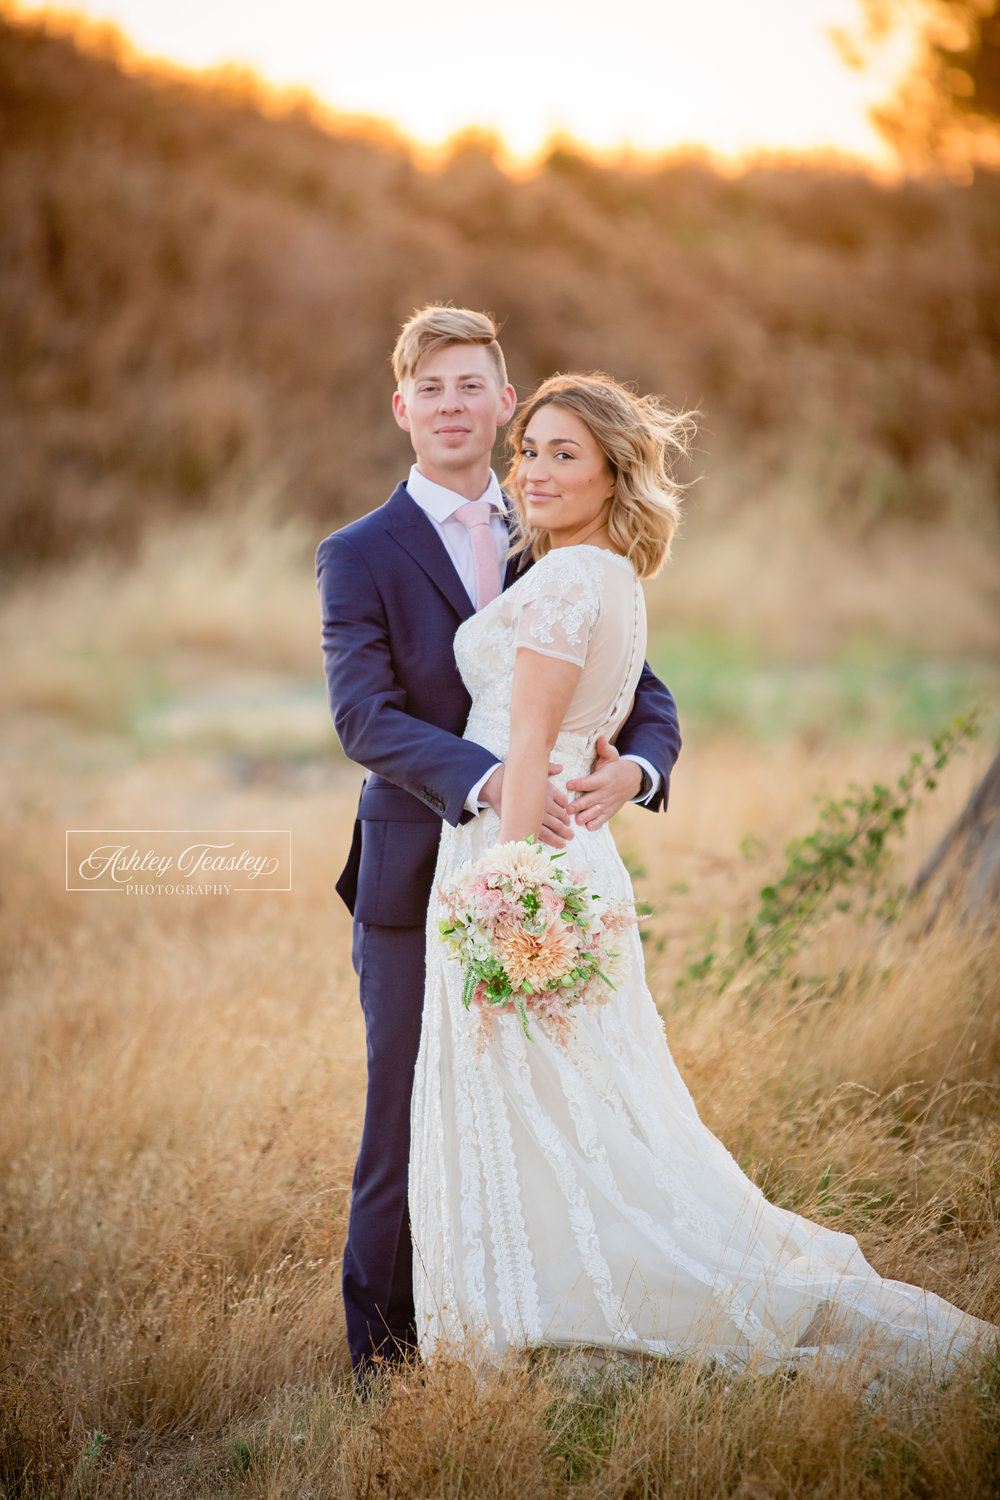 Jenicca & John - Deer Creek Weddings - Sacramento Wedding Photographer - Ashley Teasley Photography-.jpg